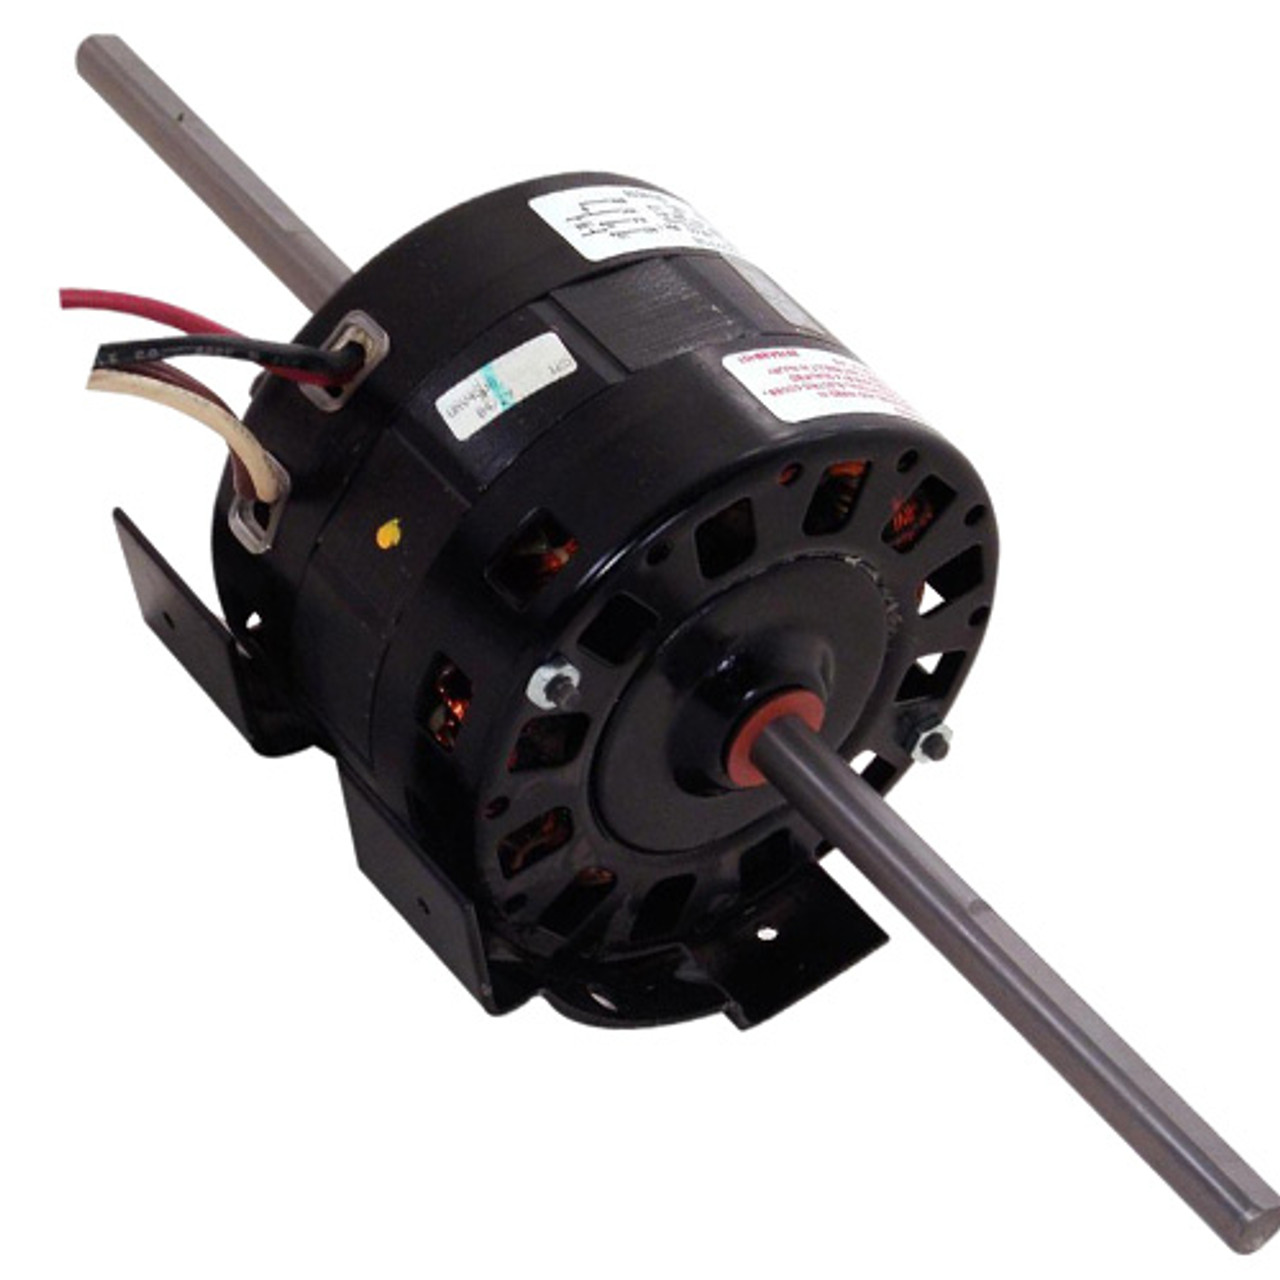 Century Coleman RV Air Conditioner Motor 1/4HP 6757B311 ORV4538 on air zone systems home, heat ac for home, ac wall units home, best ac units for home, old furnaces modular home, electric furnaces for the home, propane gas furnace mobile home, furnace heaters for home, wholesale ac units for home,